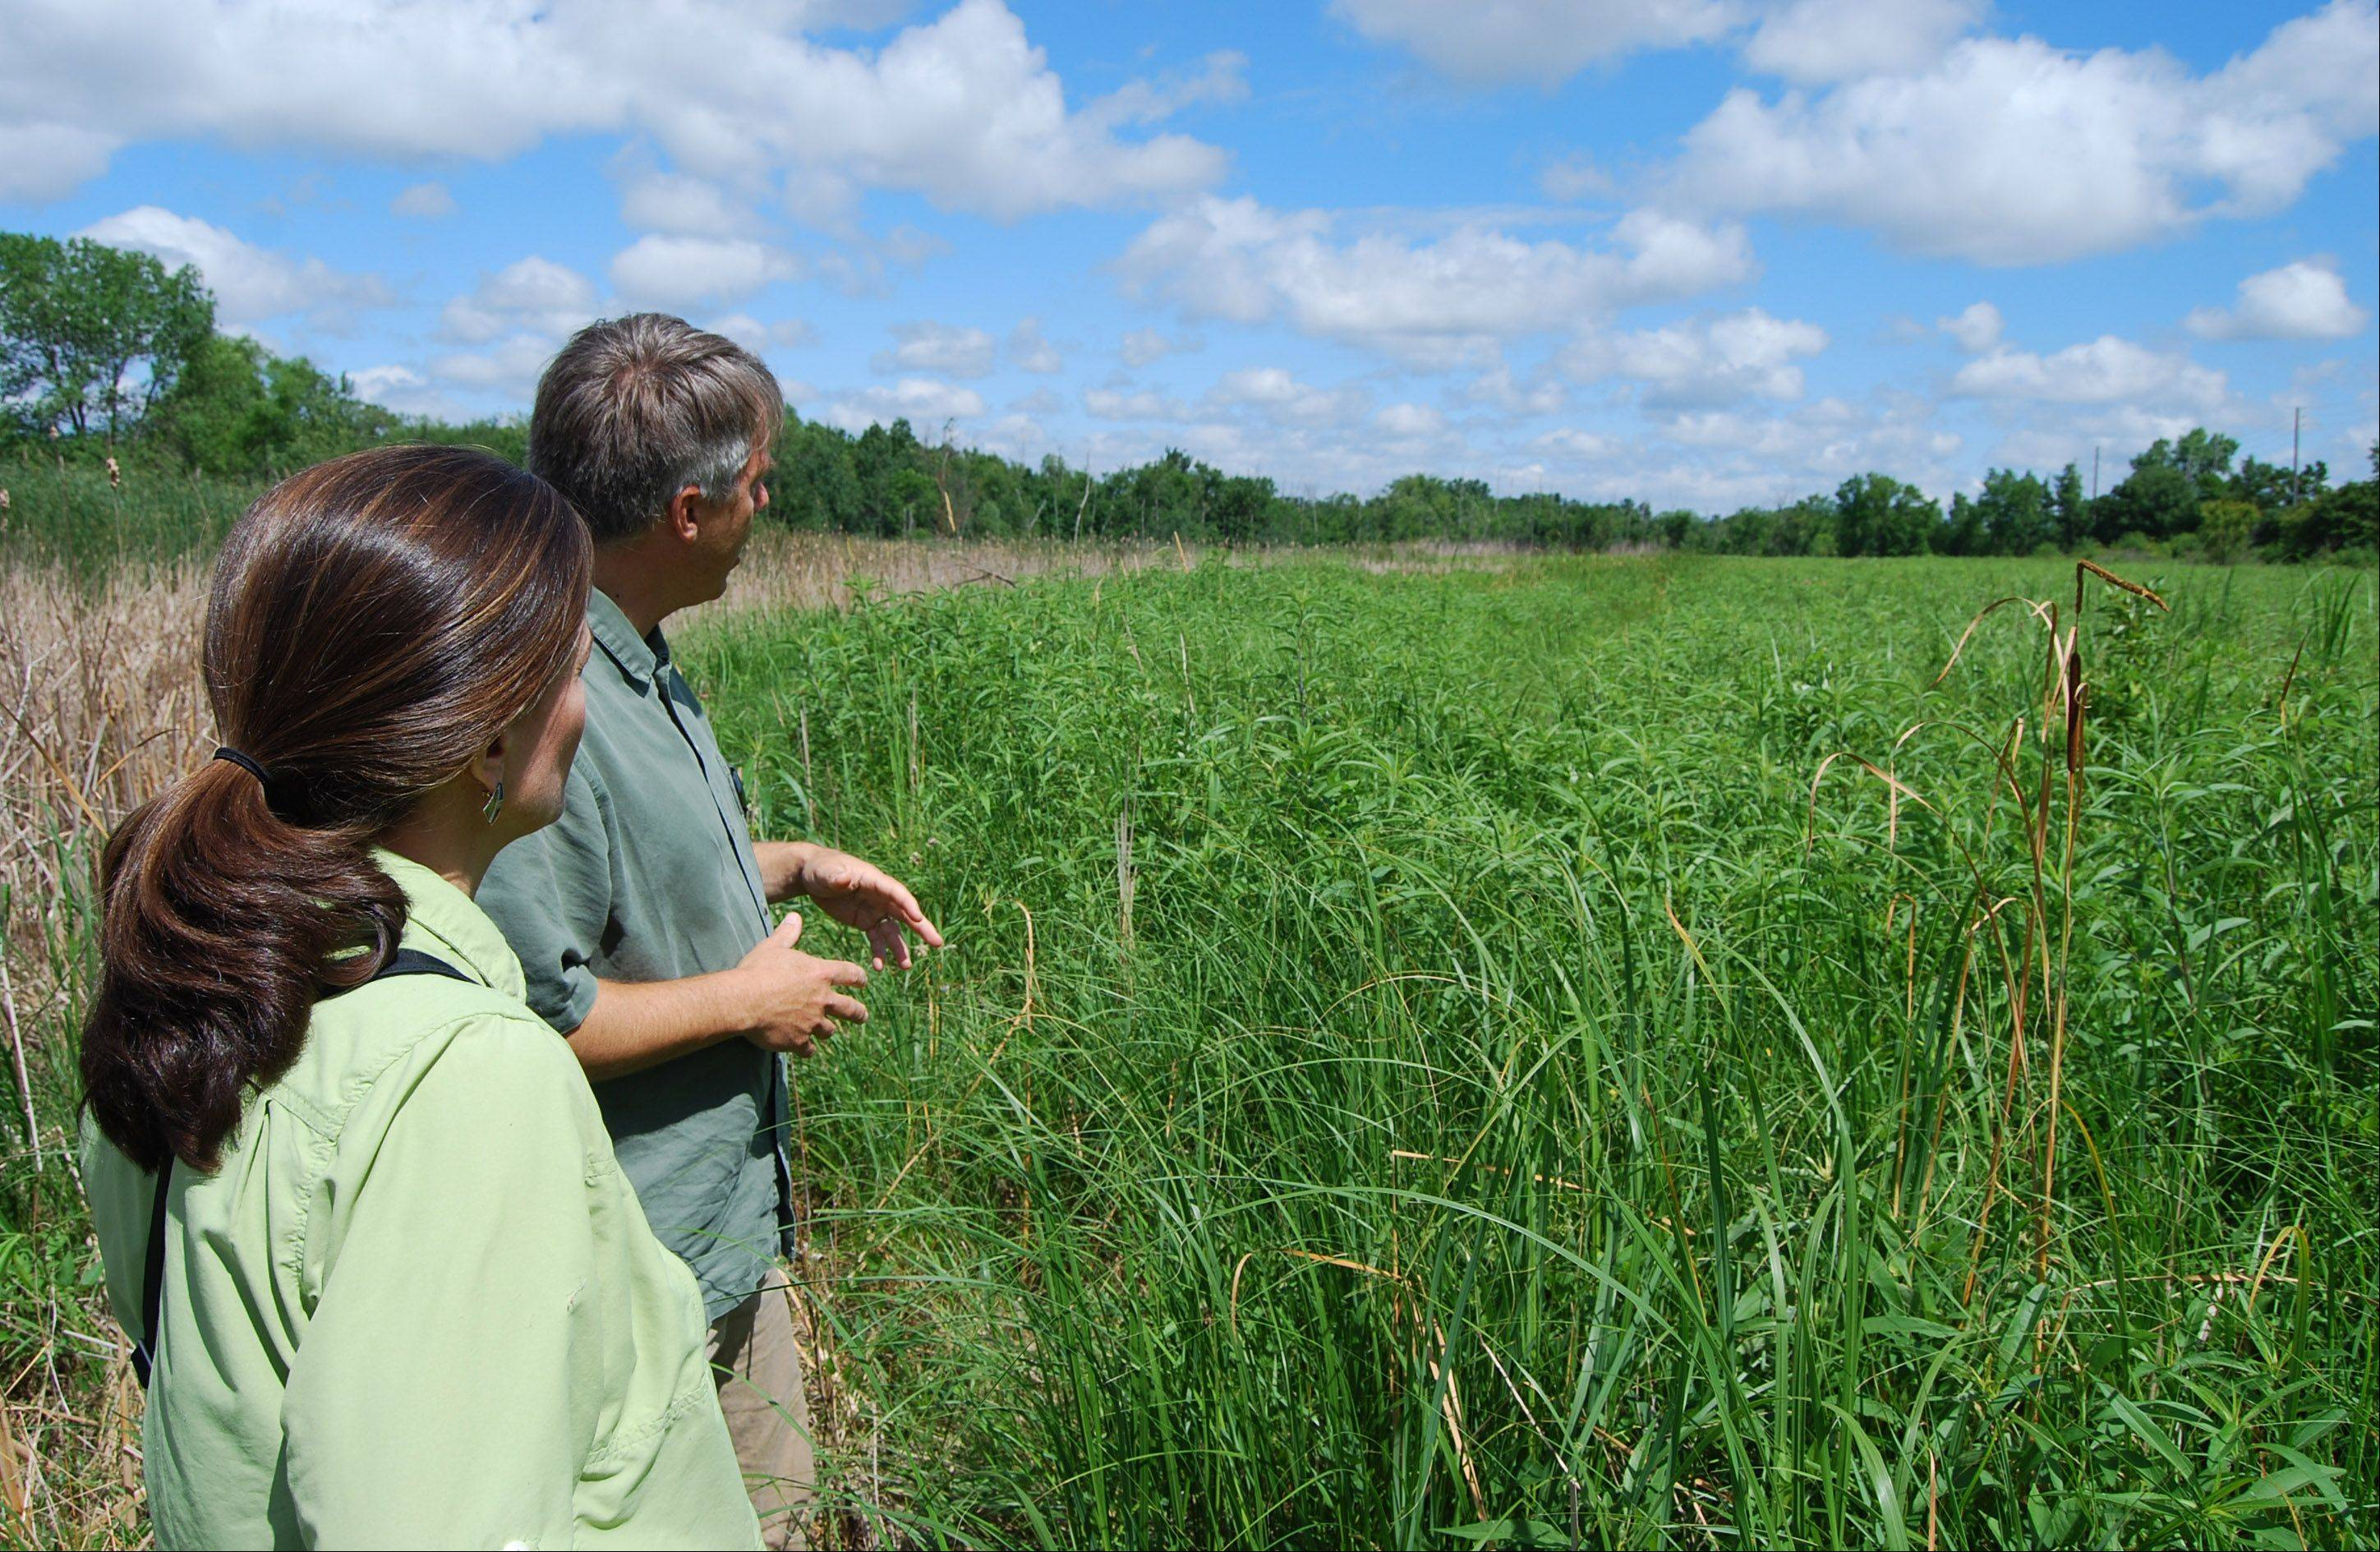 Steve Barg, executive director of Conserve Lake County shows Lois Morrison some of the unique aspects of the Dokum Mskoda Nature Preserve in Waukegan. It was one of several important Lake County parcels receiving permanent protection in 2012.